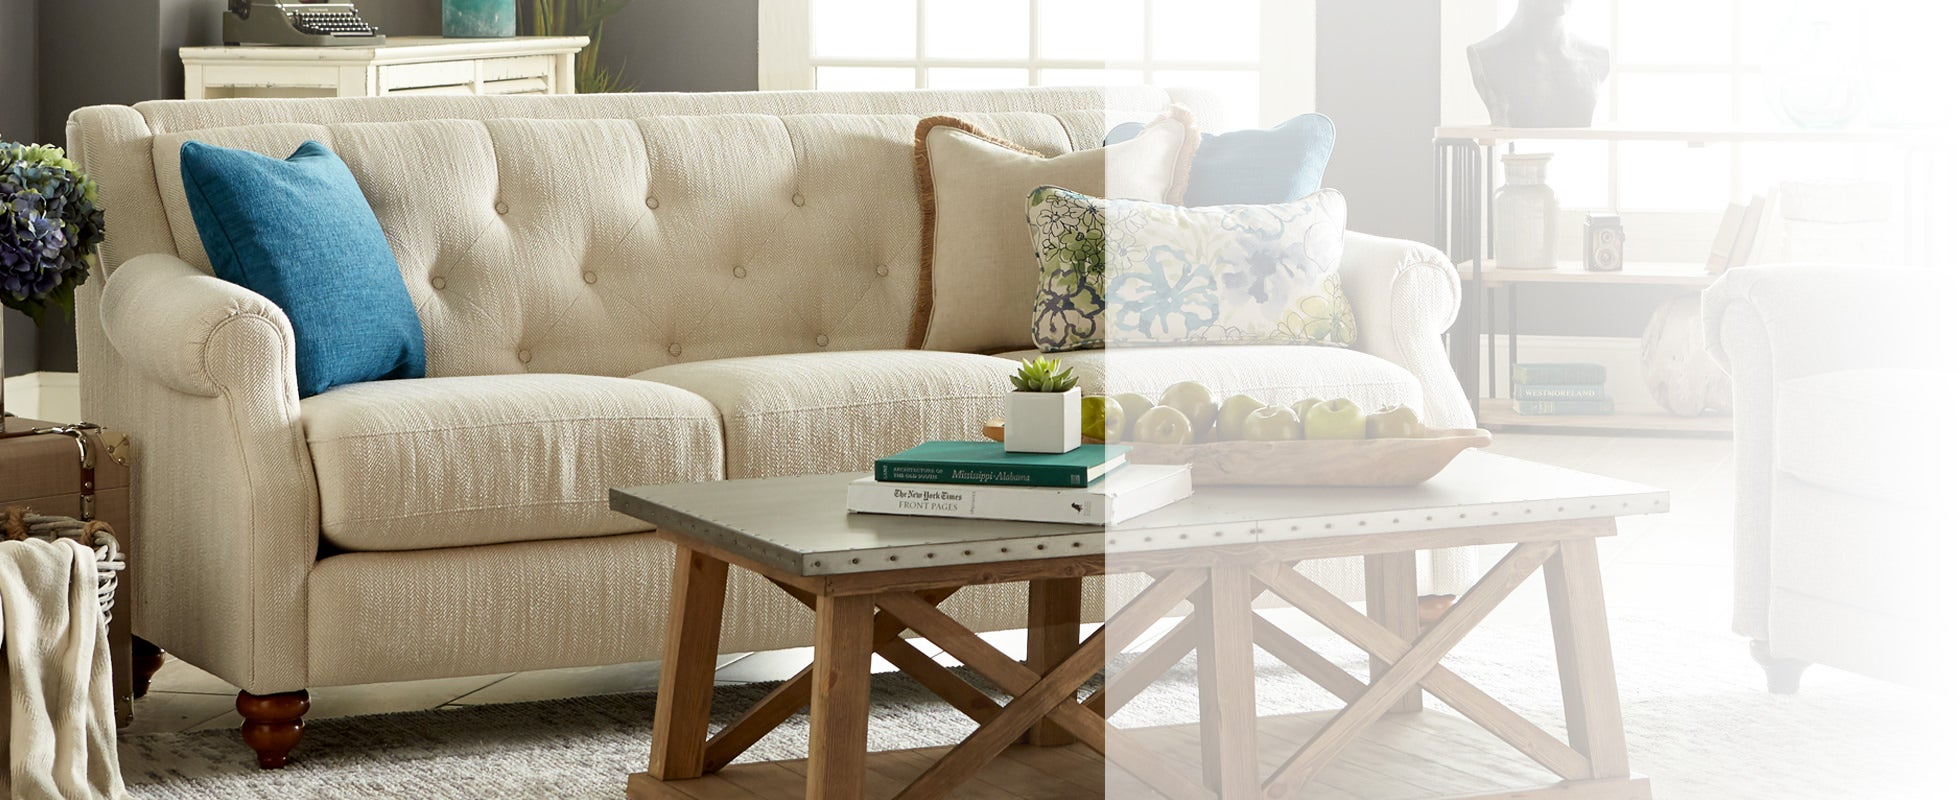 Sofa sets are the center of your living room